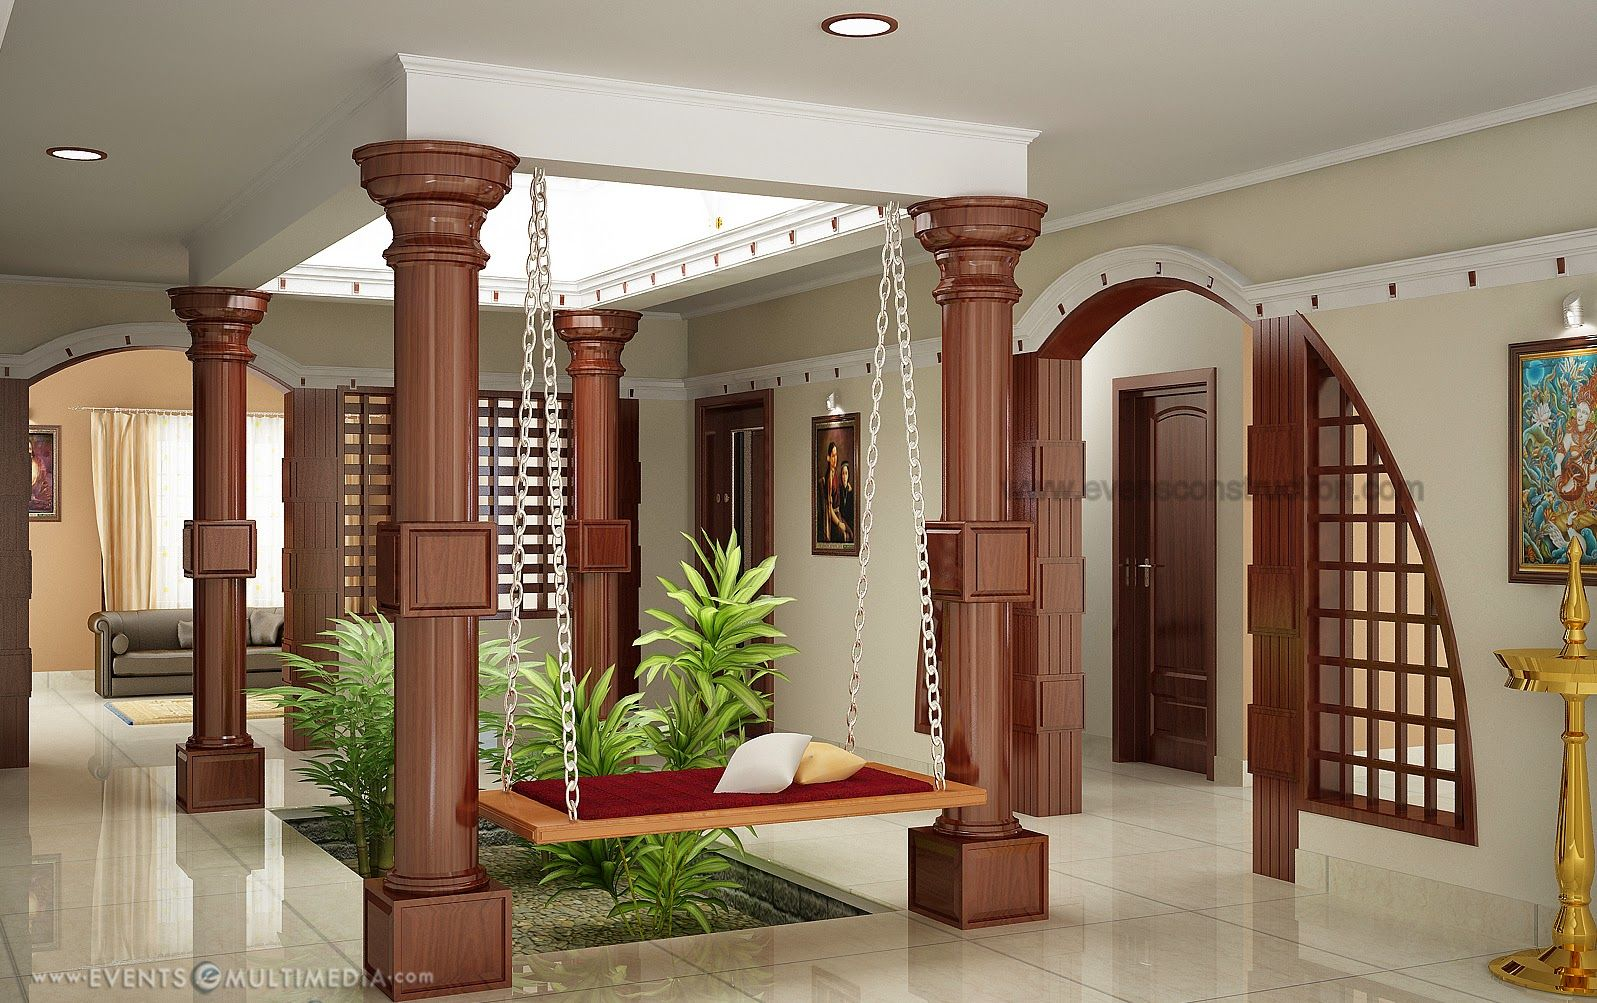 Kerala Home With Courtyard Wooden Pillers Small Open Roof Near To Living Area Partation Between Kitchen And